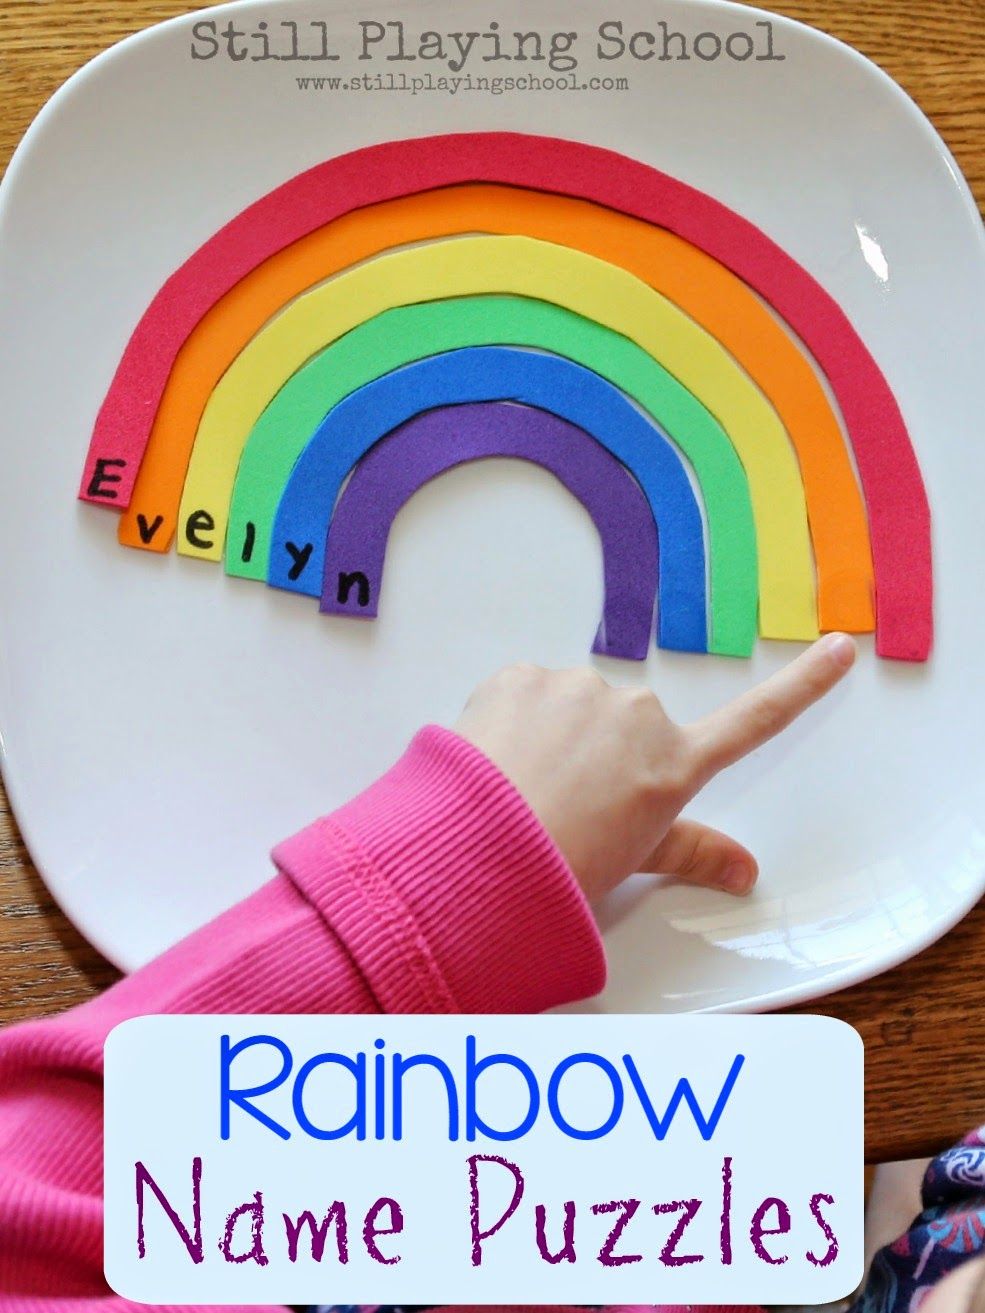 Rainbow Name Puzzles For Kids Still Playing School